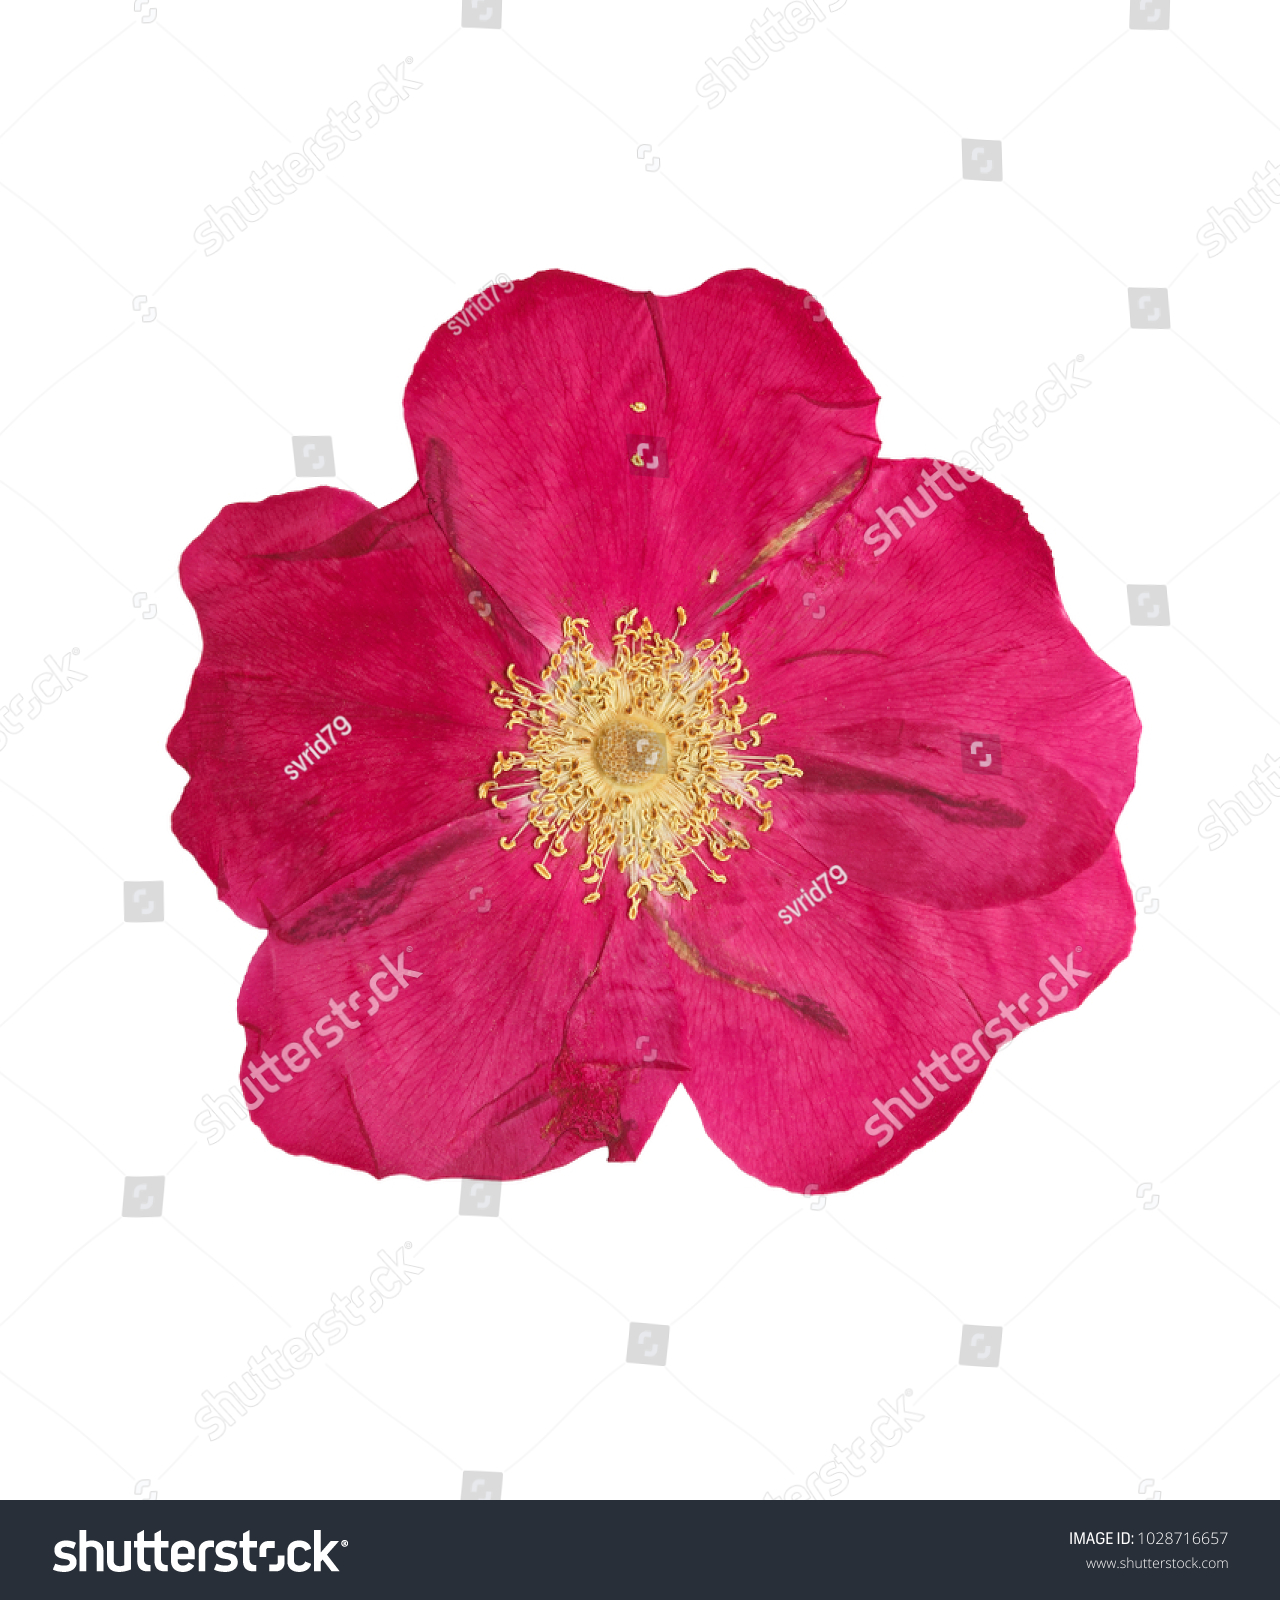 Pressed Dried Pink Delicate Transparent Flower Stock Photo (Edit Now ...